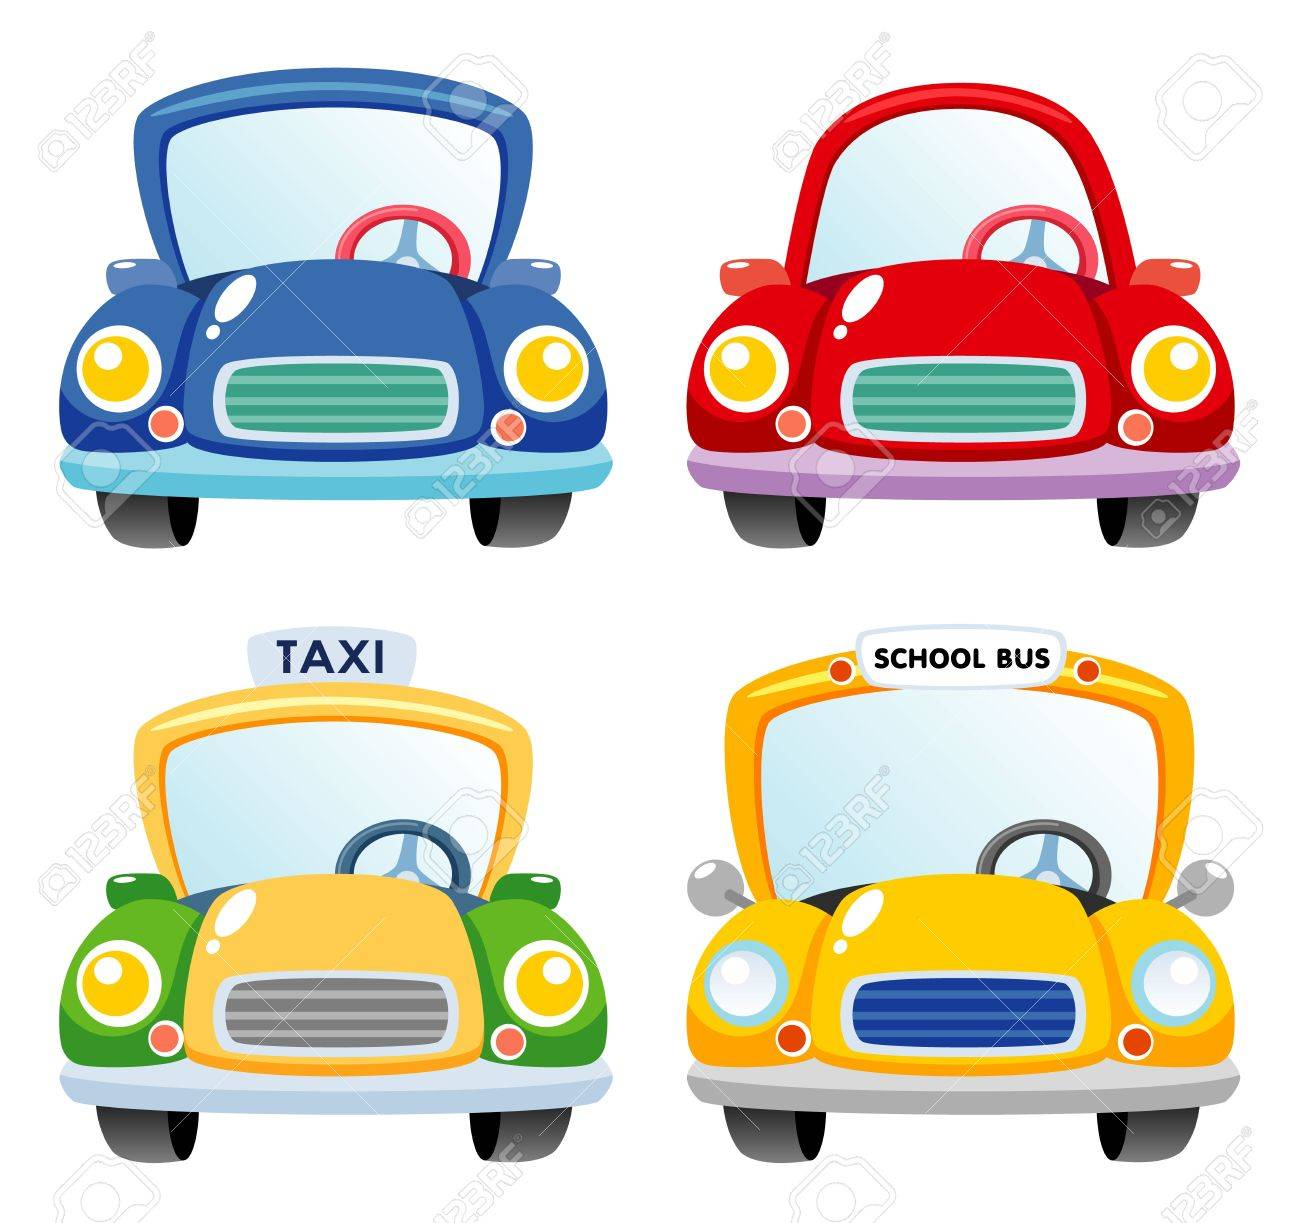 46,189 Cartoon Car Stock Vector Illustration And Royalty Free ...